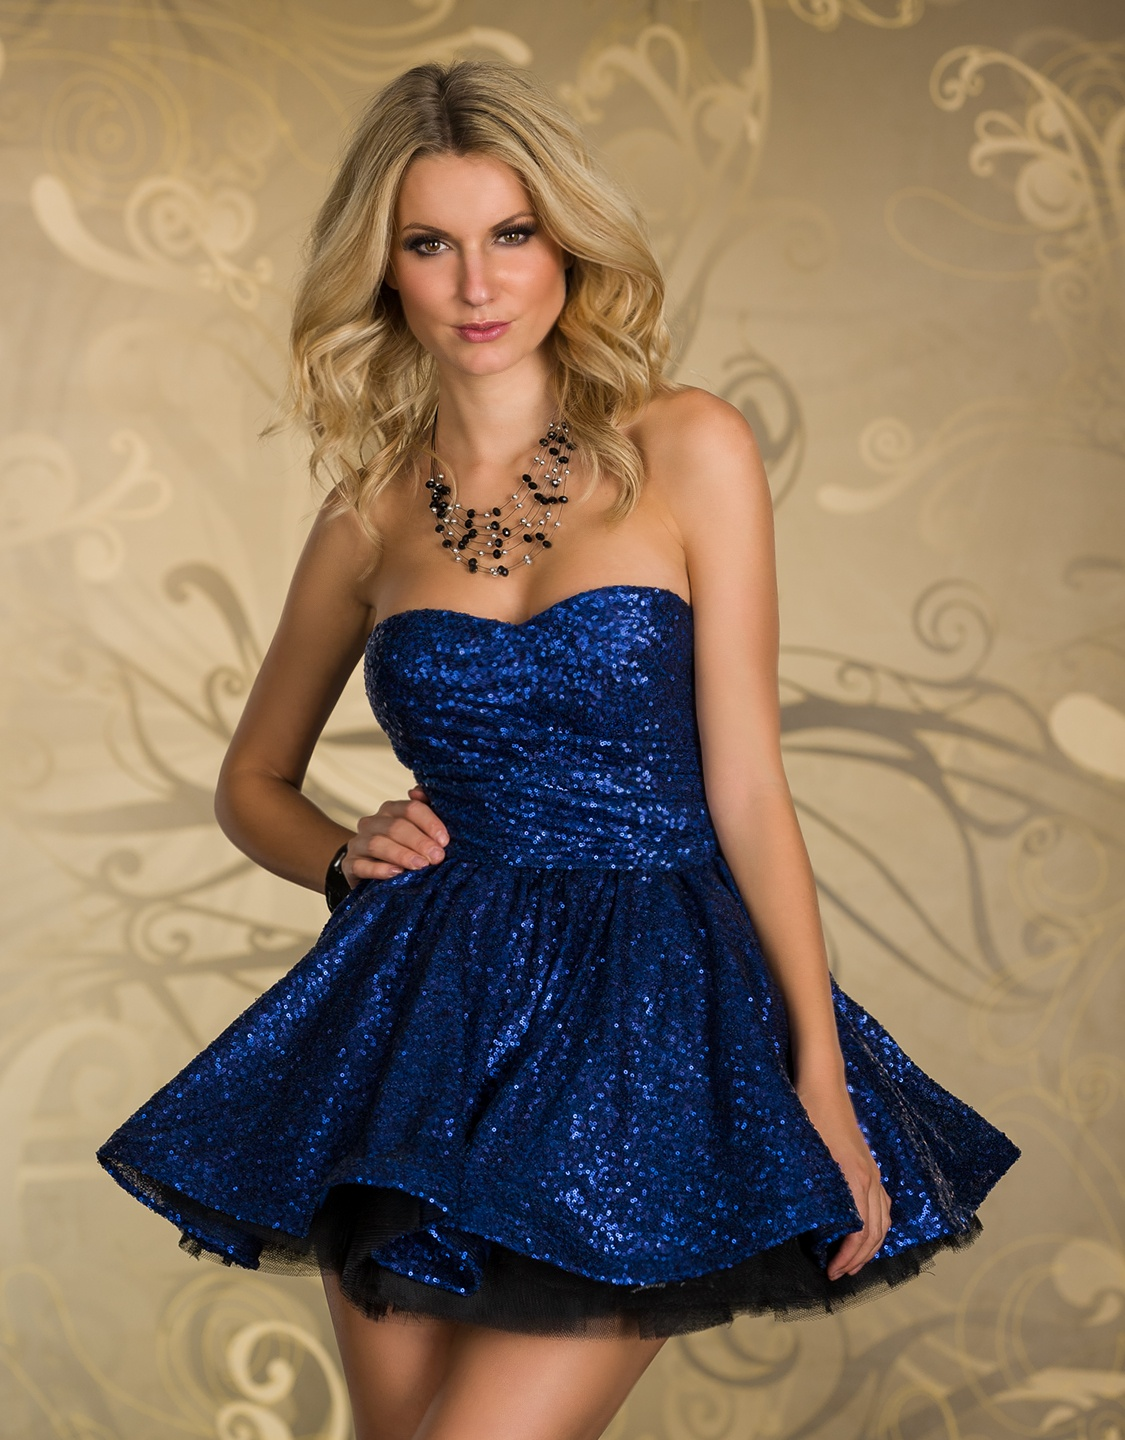 Blue Sequined Strapless Prom Dress With Puffy Skirt